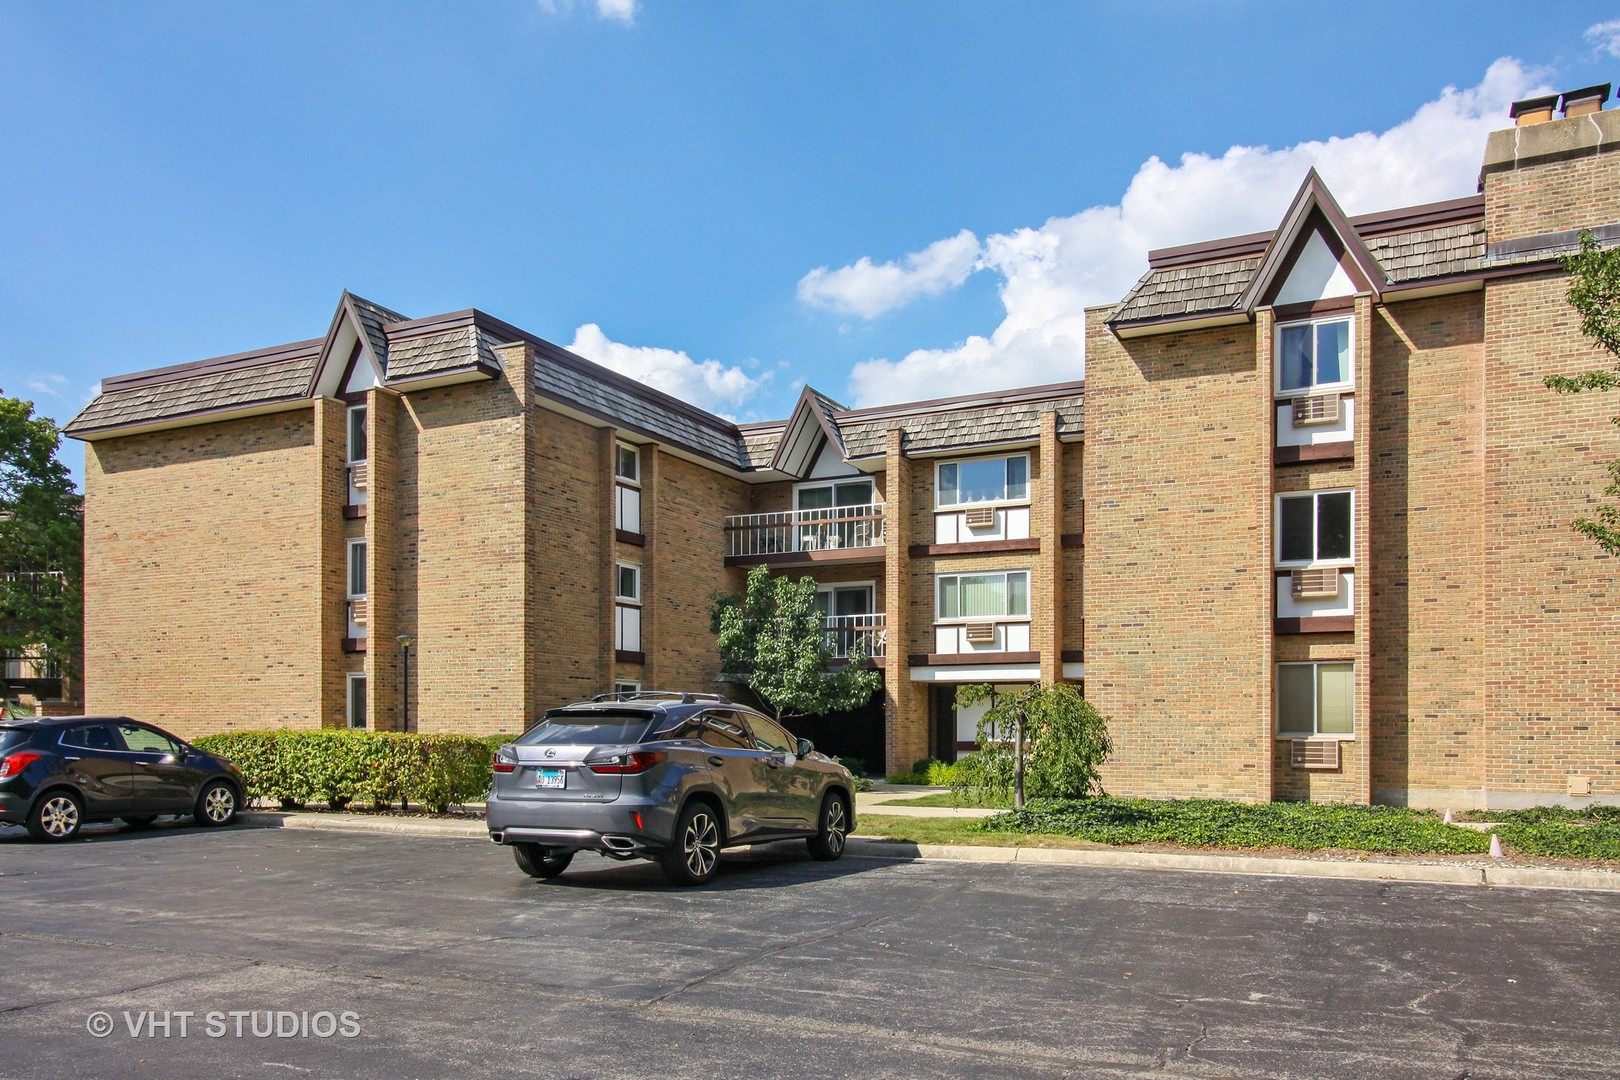 300 Claymoor Street, Unit 2d, Hinsdale, Illinois 60521